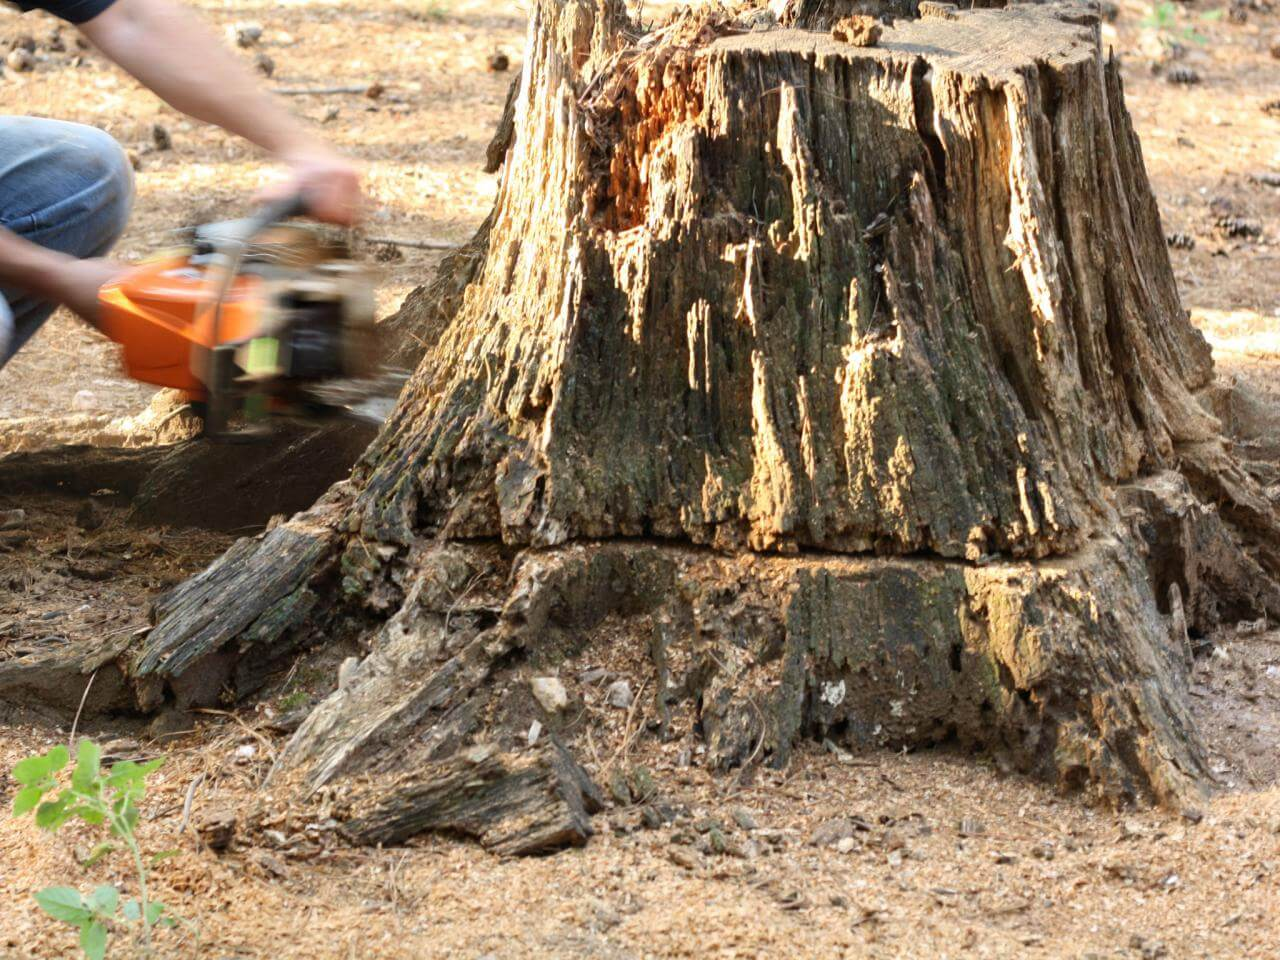 Stump Removal-Montgomery Tree Trimming and Stump Grinding Services-We Offer Tree Trimming Services, Tree Removal, Tree Pruning, Tree Cutting, Residential and Commercial Tree Trimming Services, Storm Damage, Emergency Tree Removal, Land Clearing, Tree Companies, Tree Care Service, Stump Grinding, and we're the Best Tree Trimming Company Near You Guaranteed!